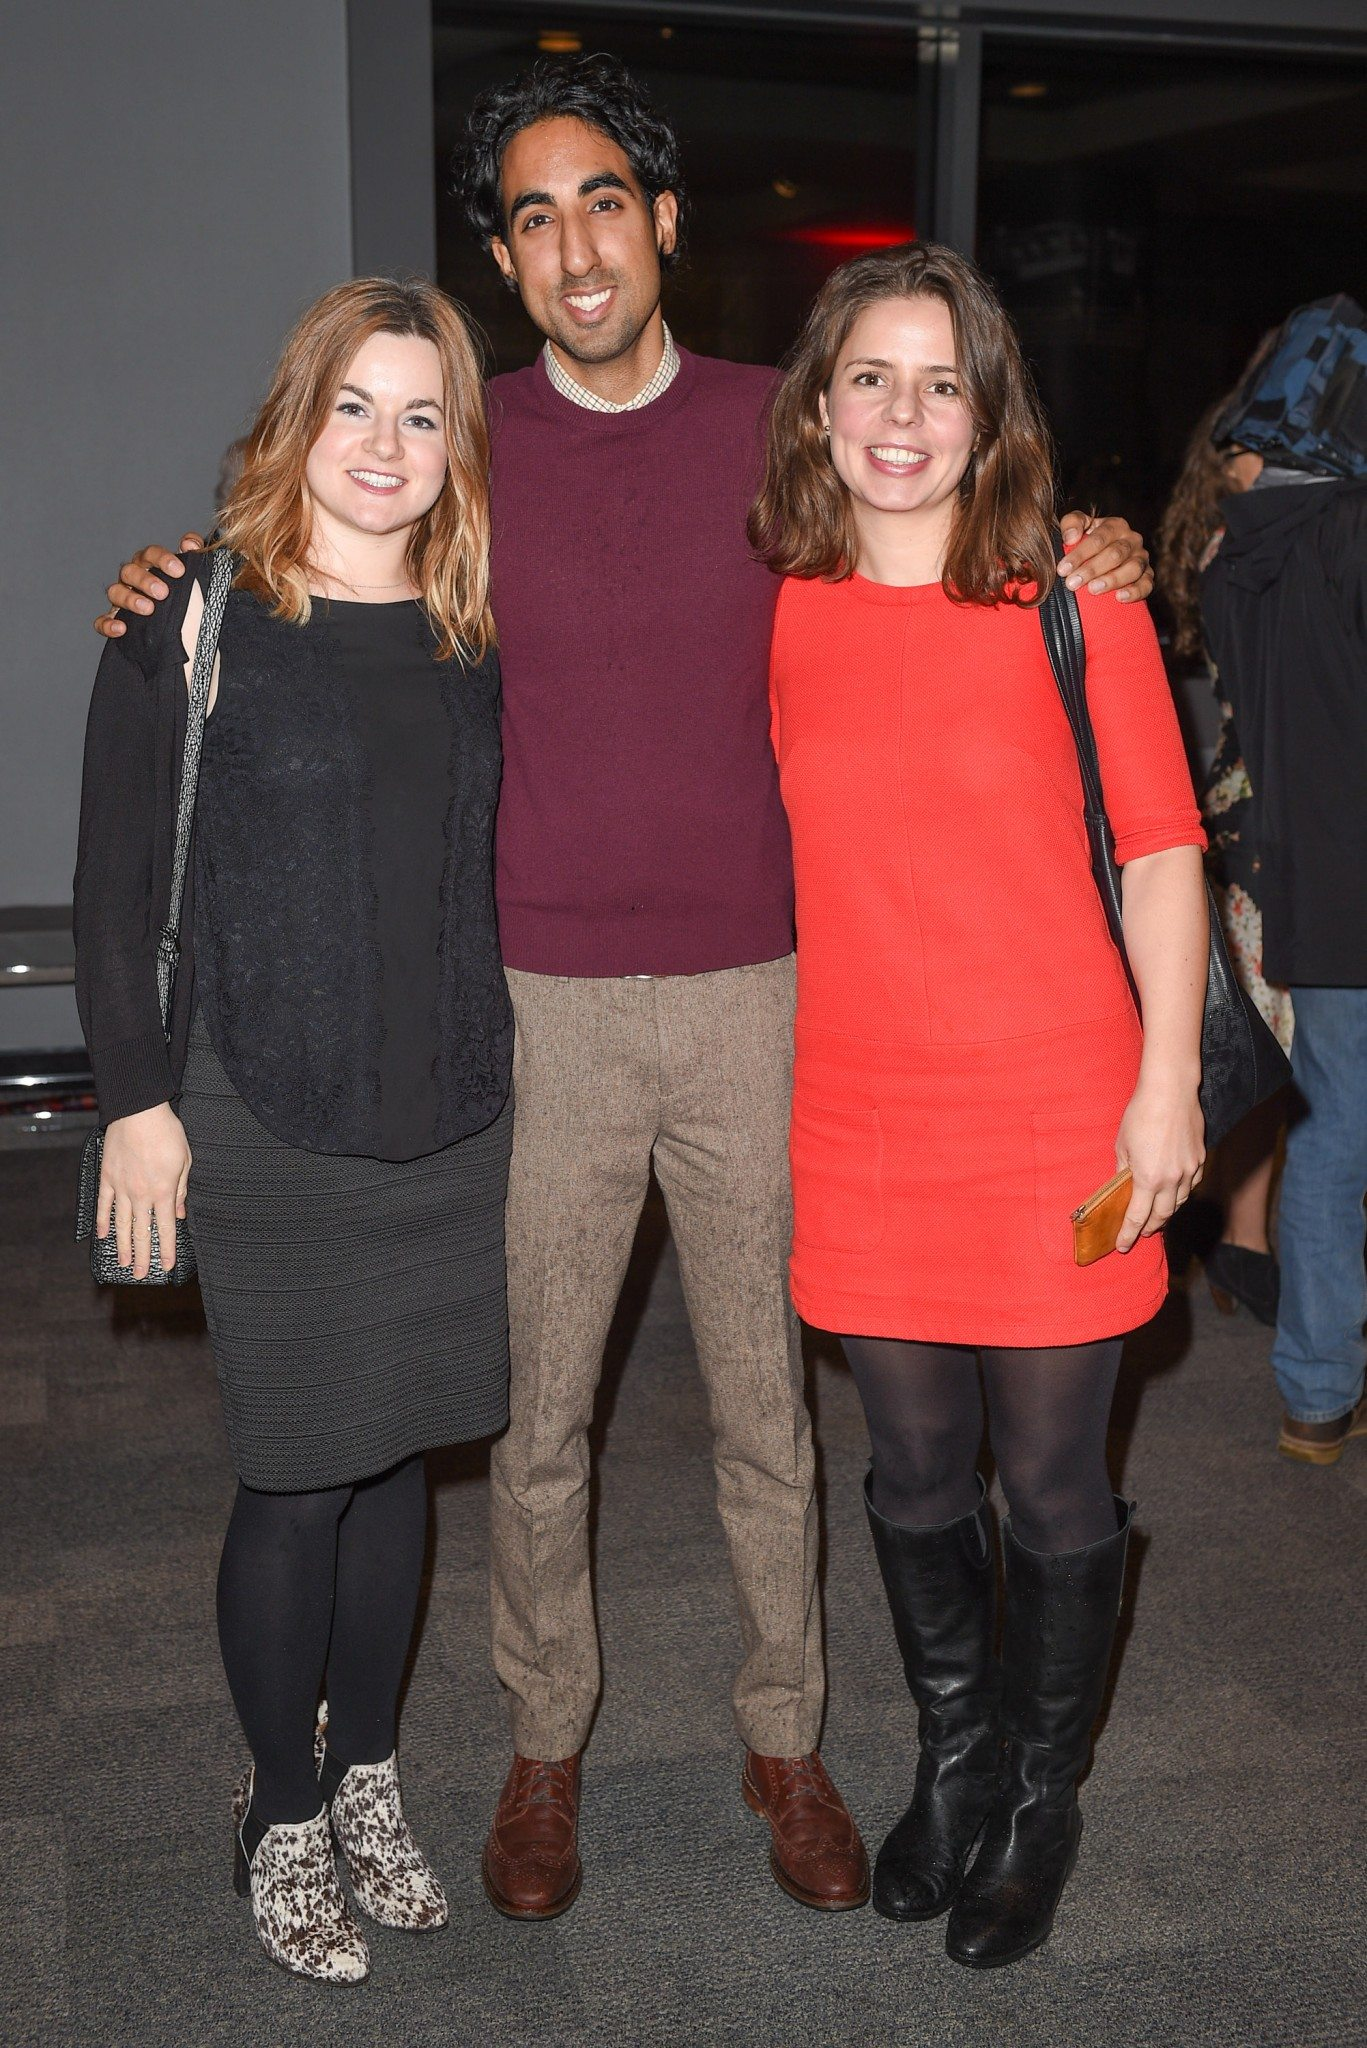 Jolise Beaton, Neil Wadhwa, and Gillian Fizet (Photo: George Pimentel Photography)